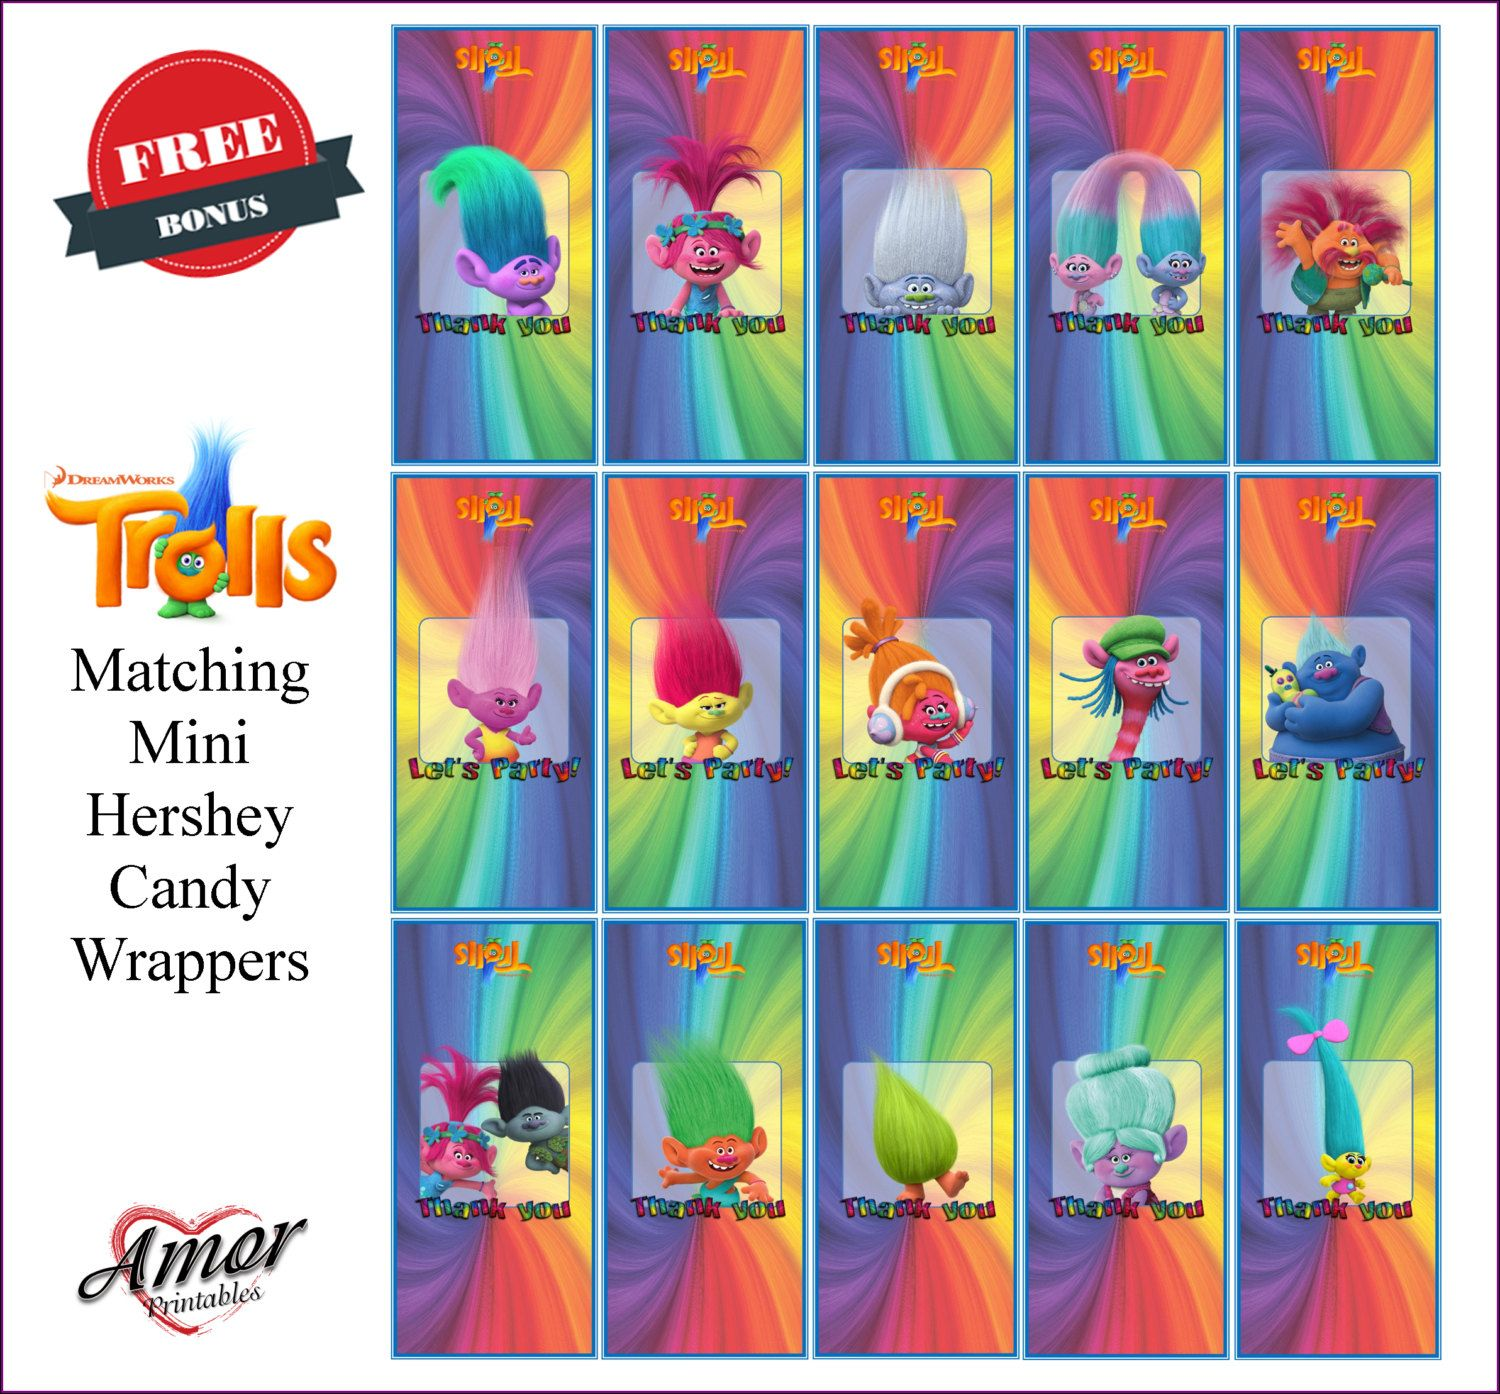 https://www.etsy.com/listing/474319950/trolls-gift-tags-plus-bonus-mini-hershey?ref=related-0